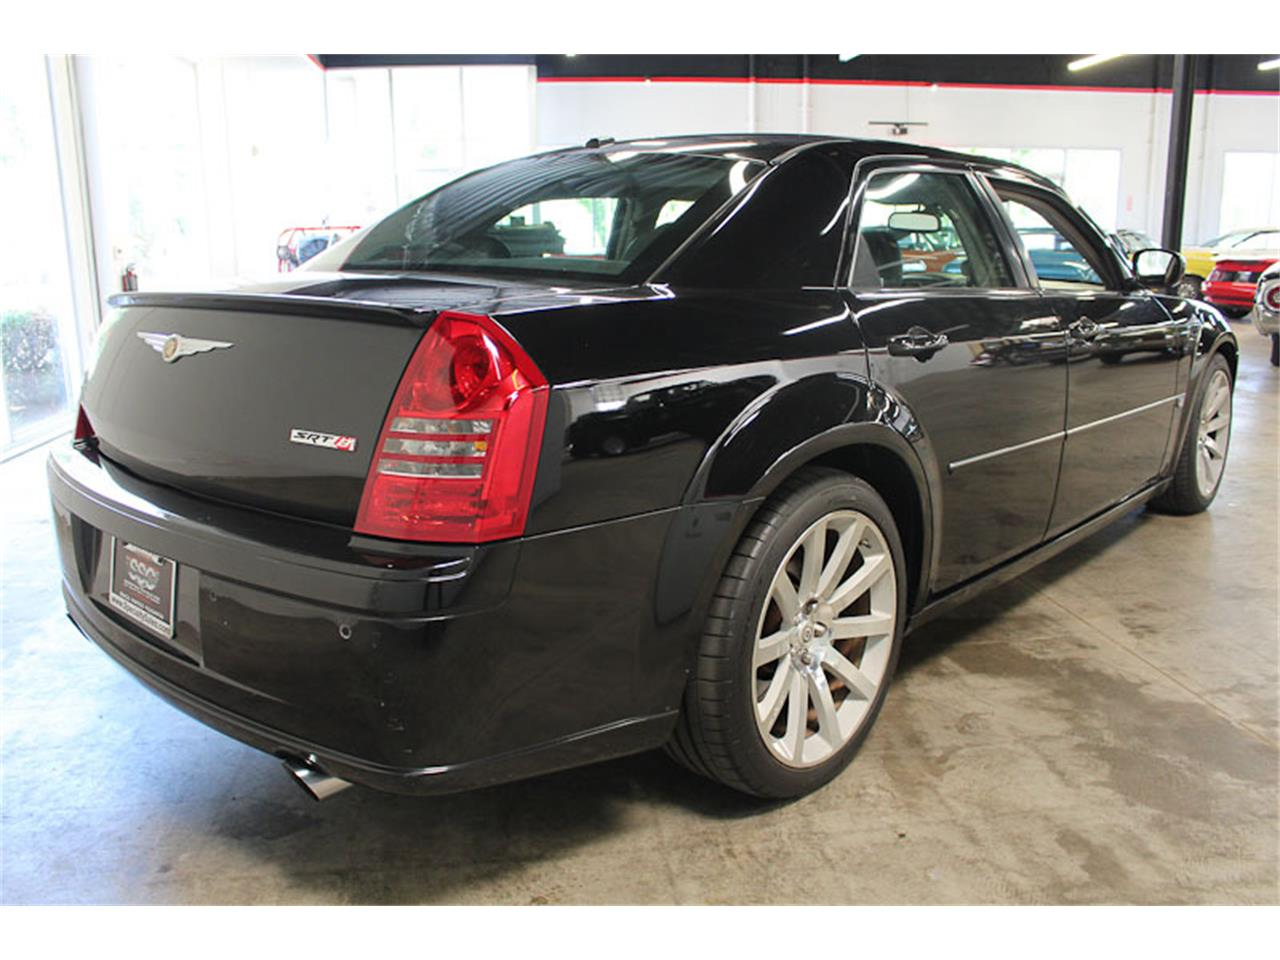 Large Picture of '07 Chrysler 300 - $9,900.00 - M9O4